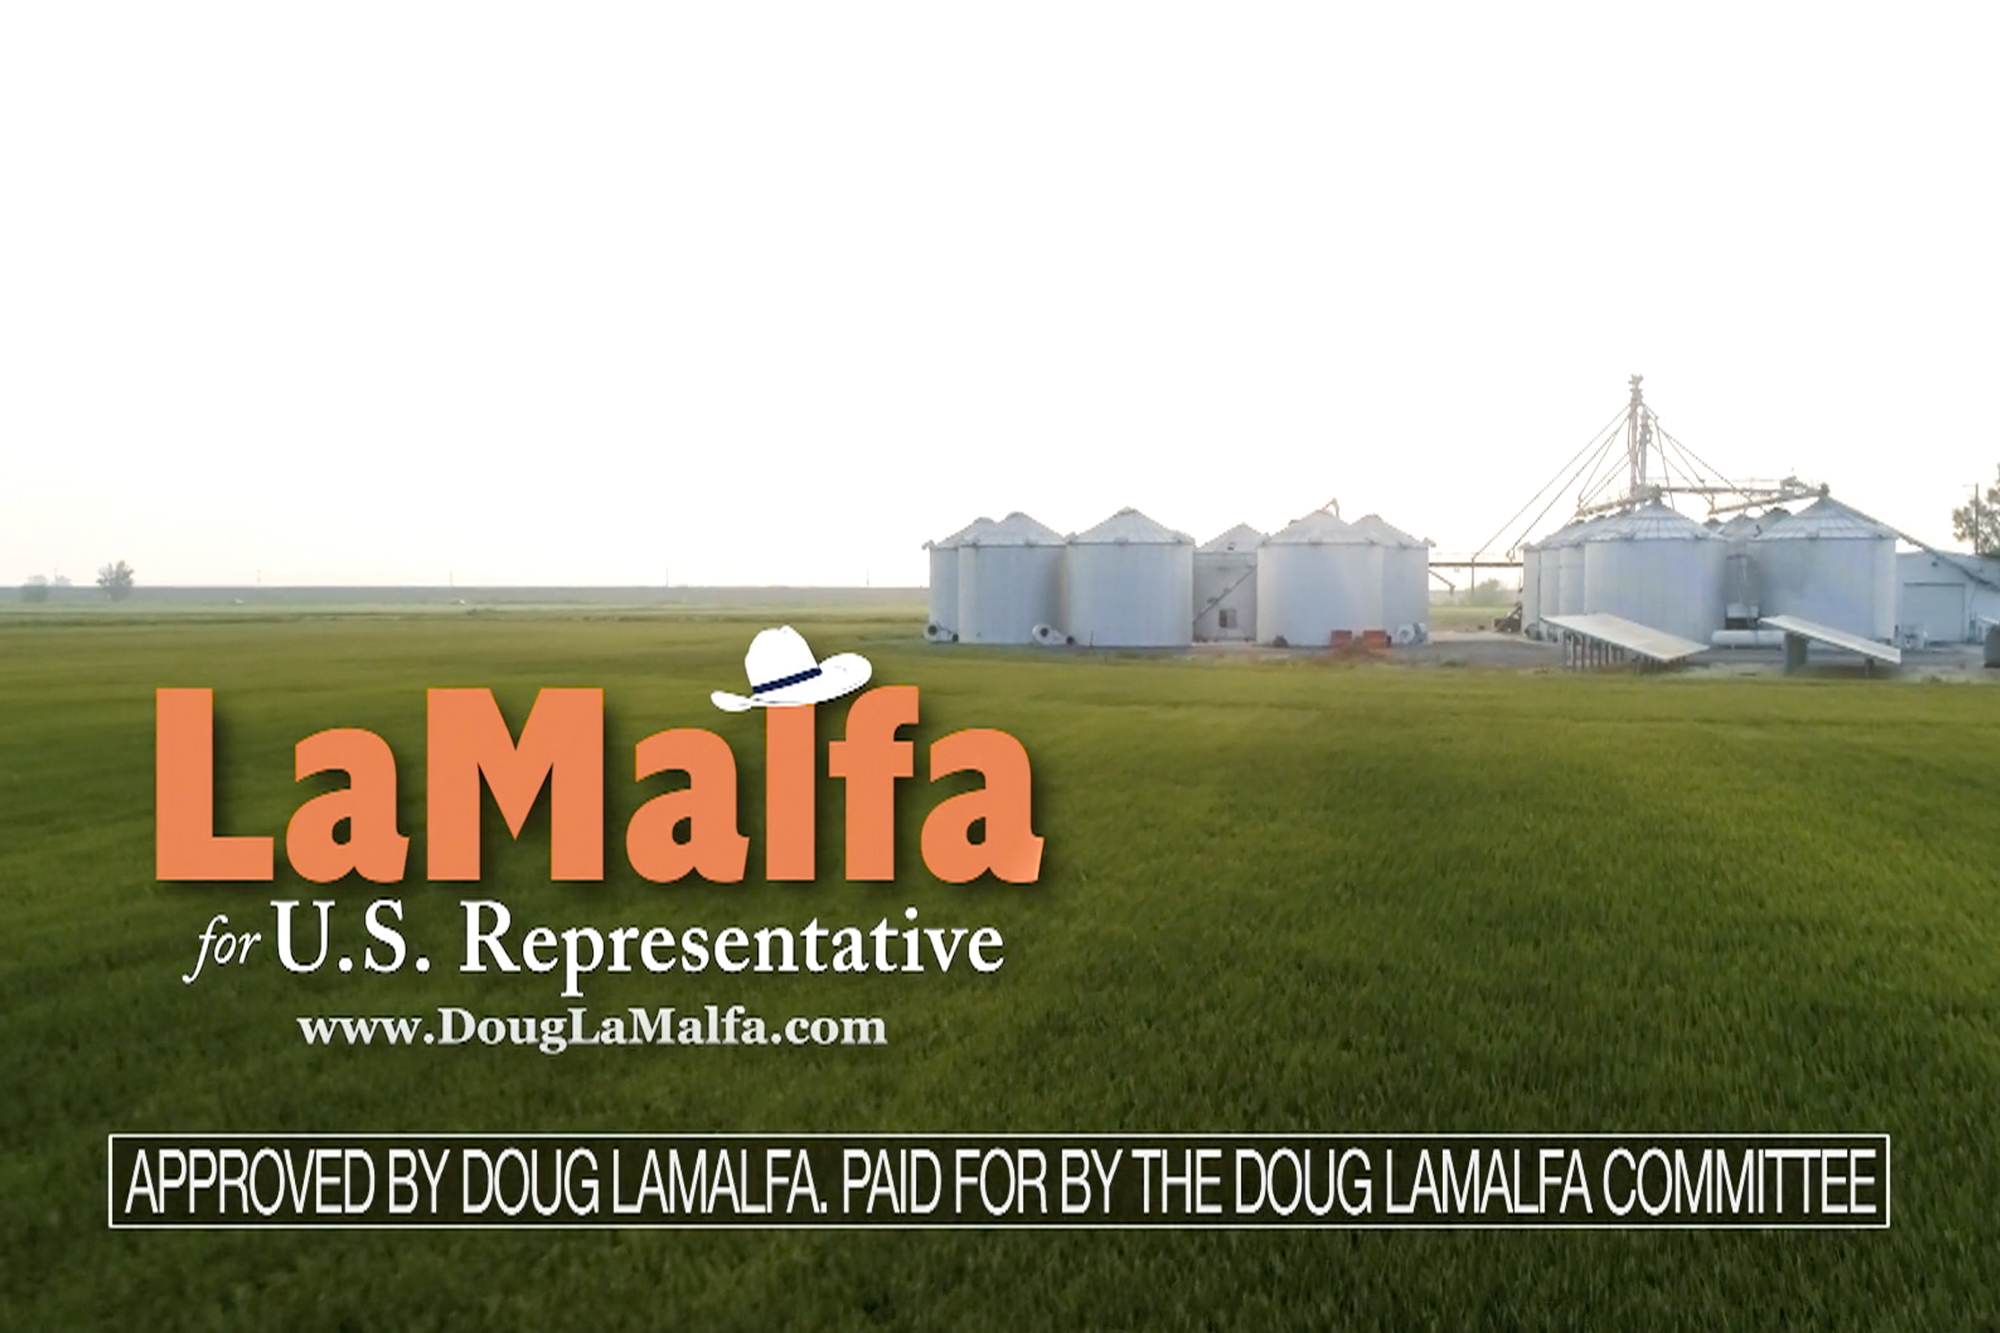 Doug LaMalfa Farm TV Spot